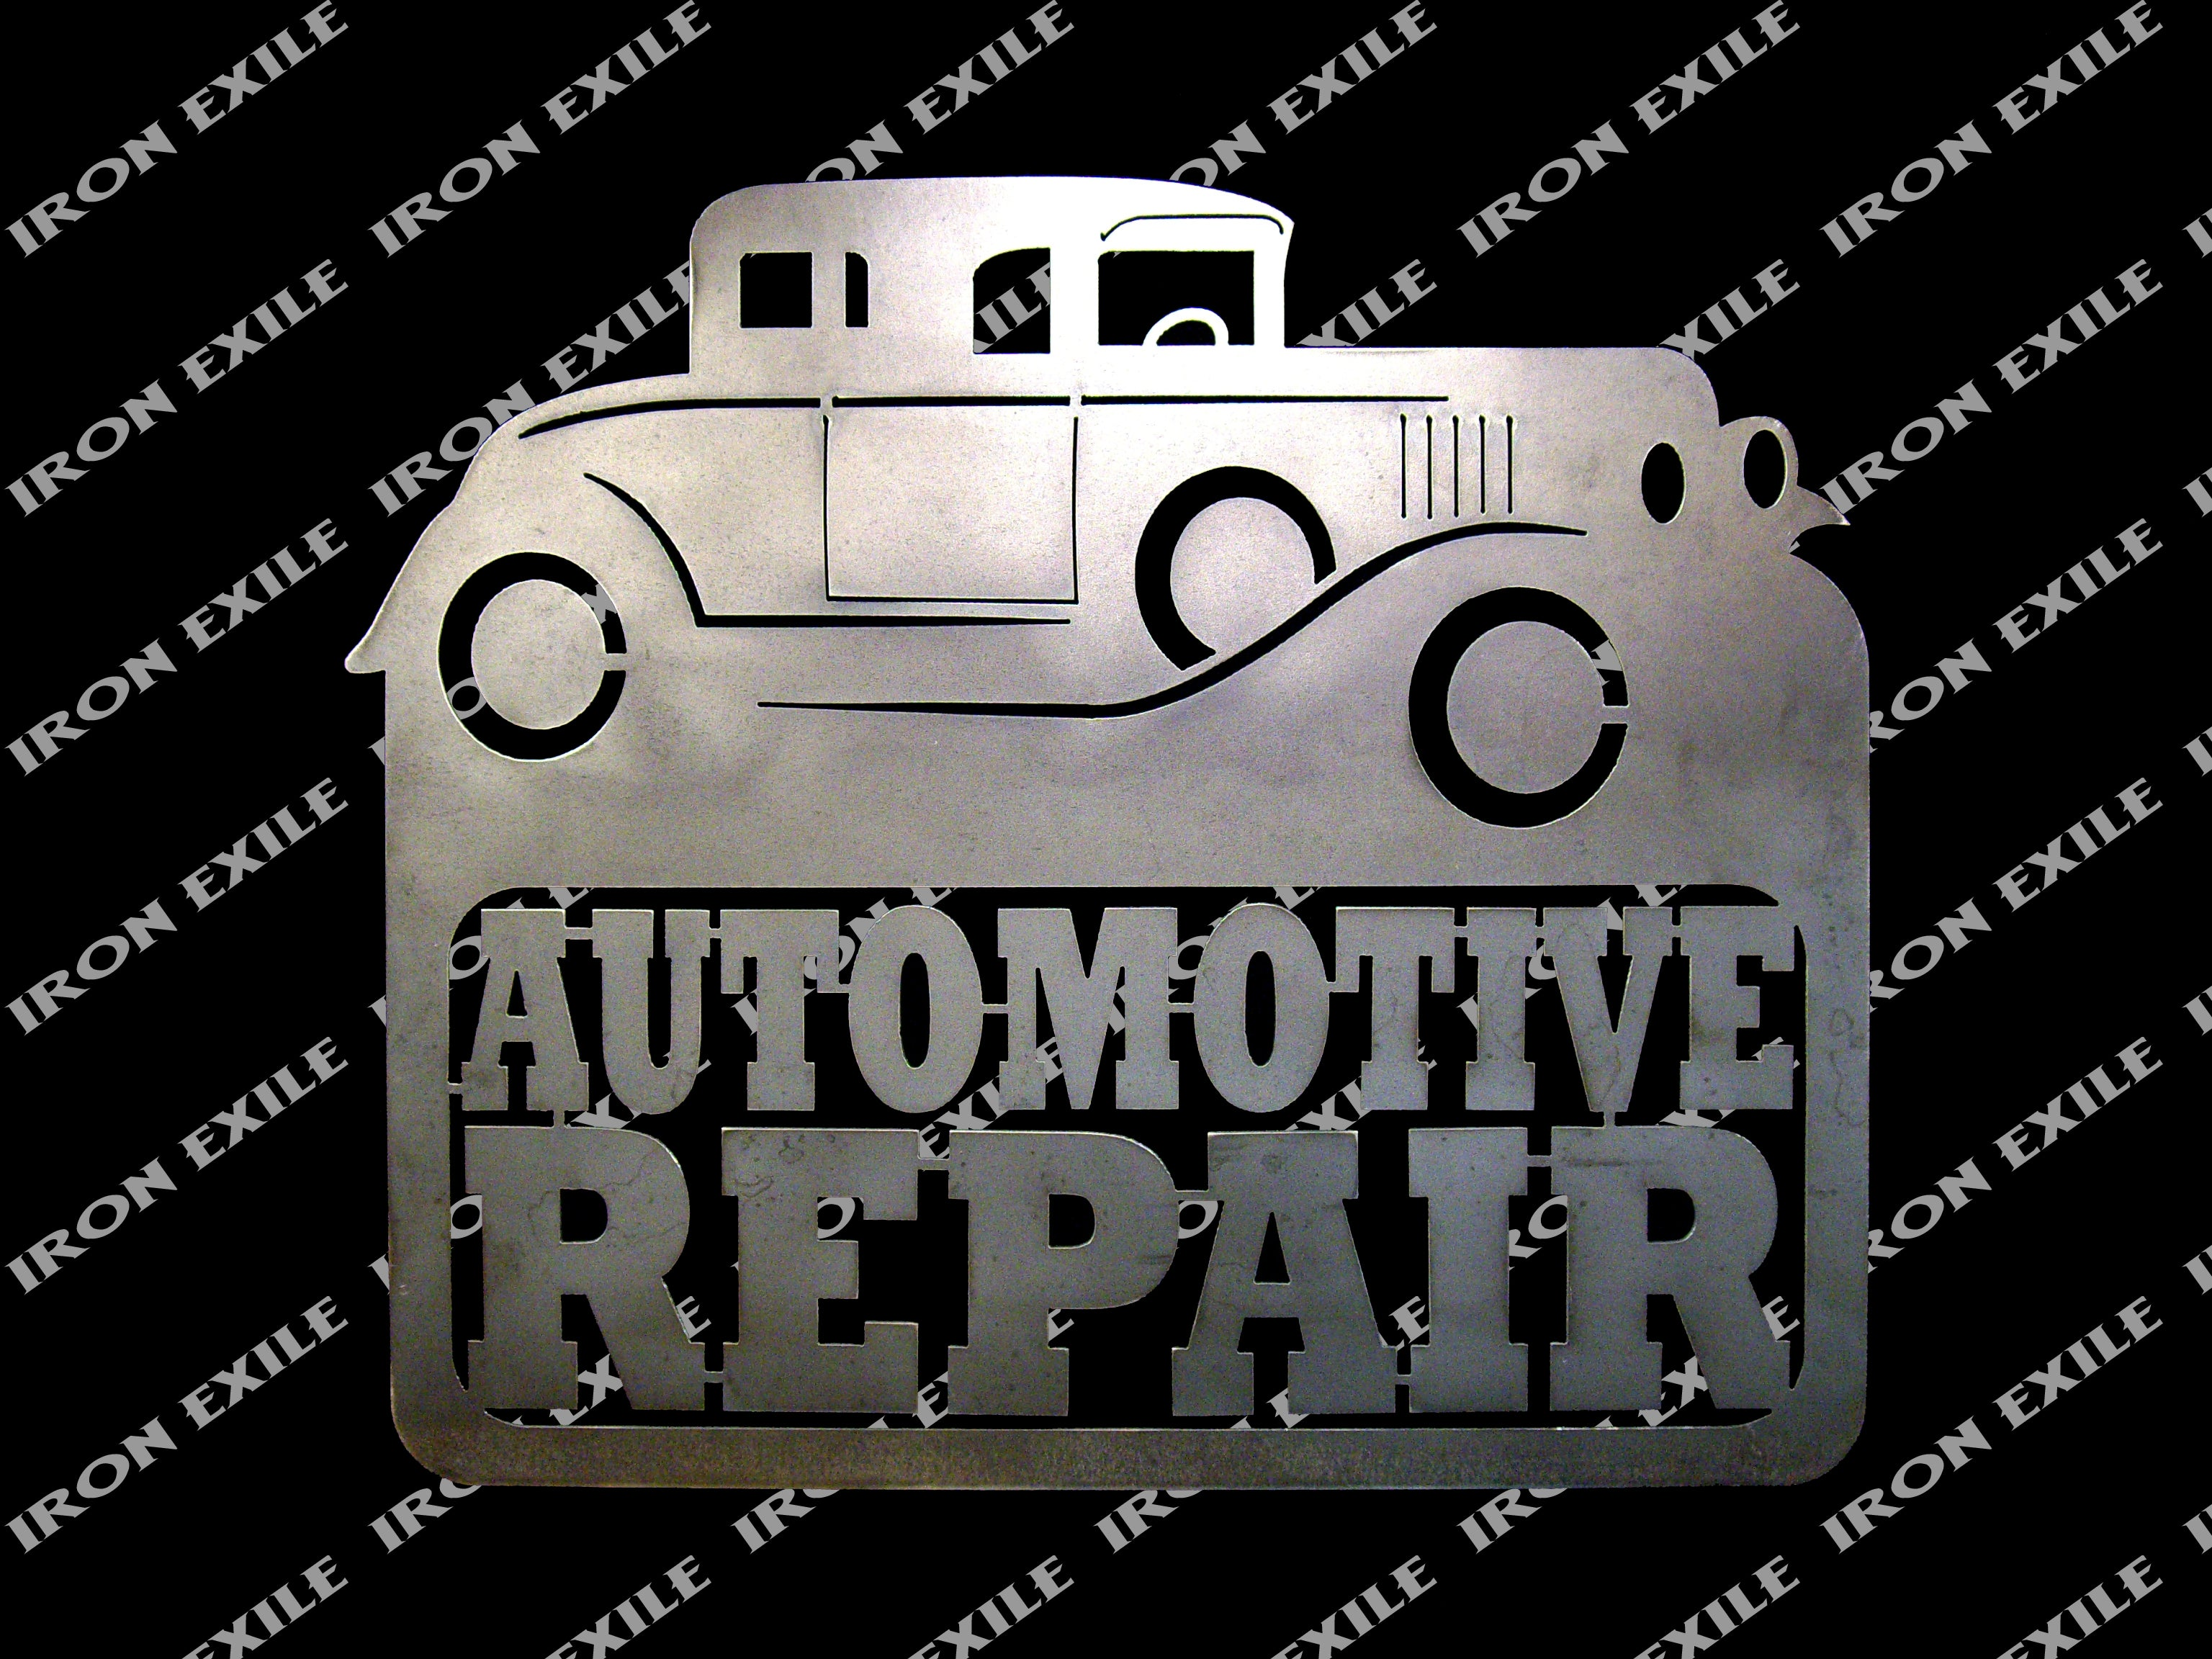 Military Man Cave Signs : Automotive repair garage sign wall art decor hot rod